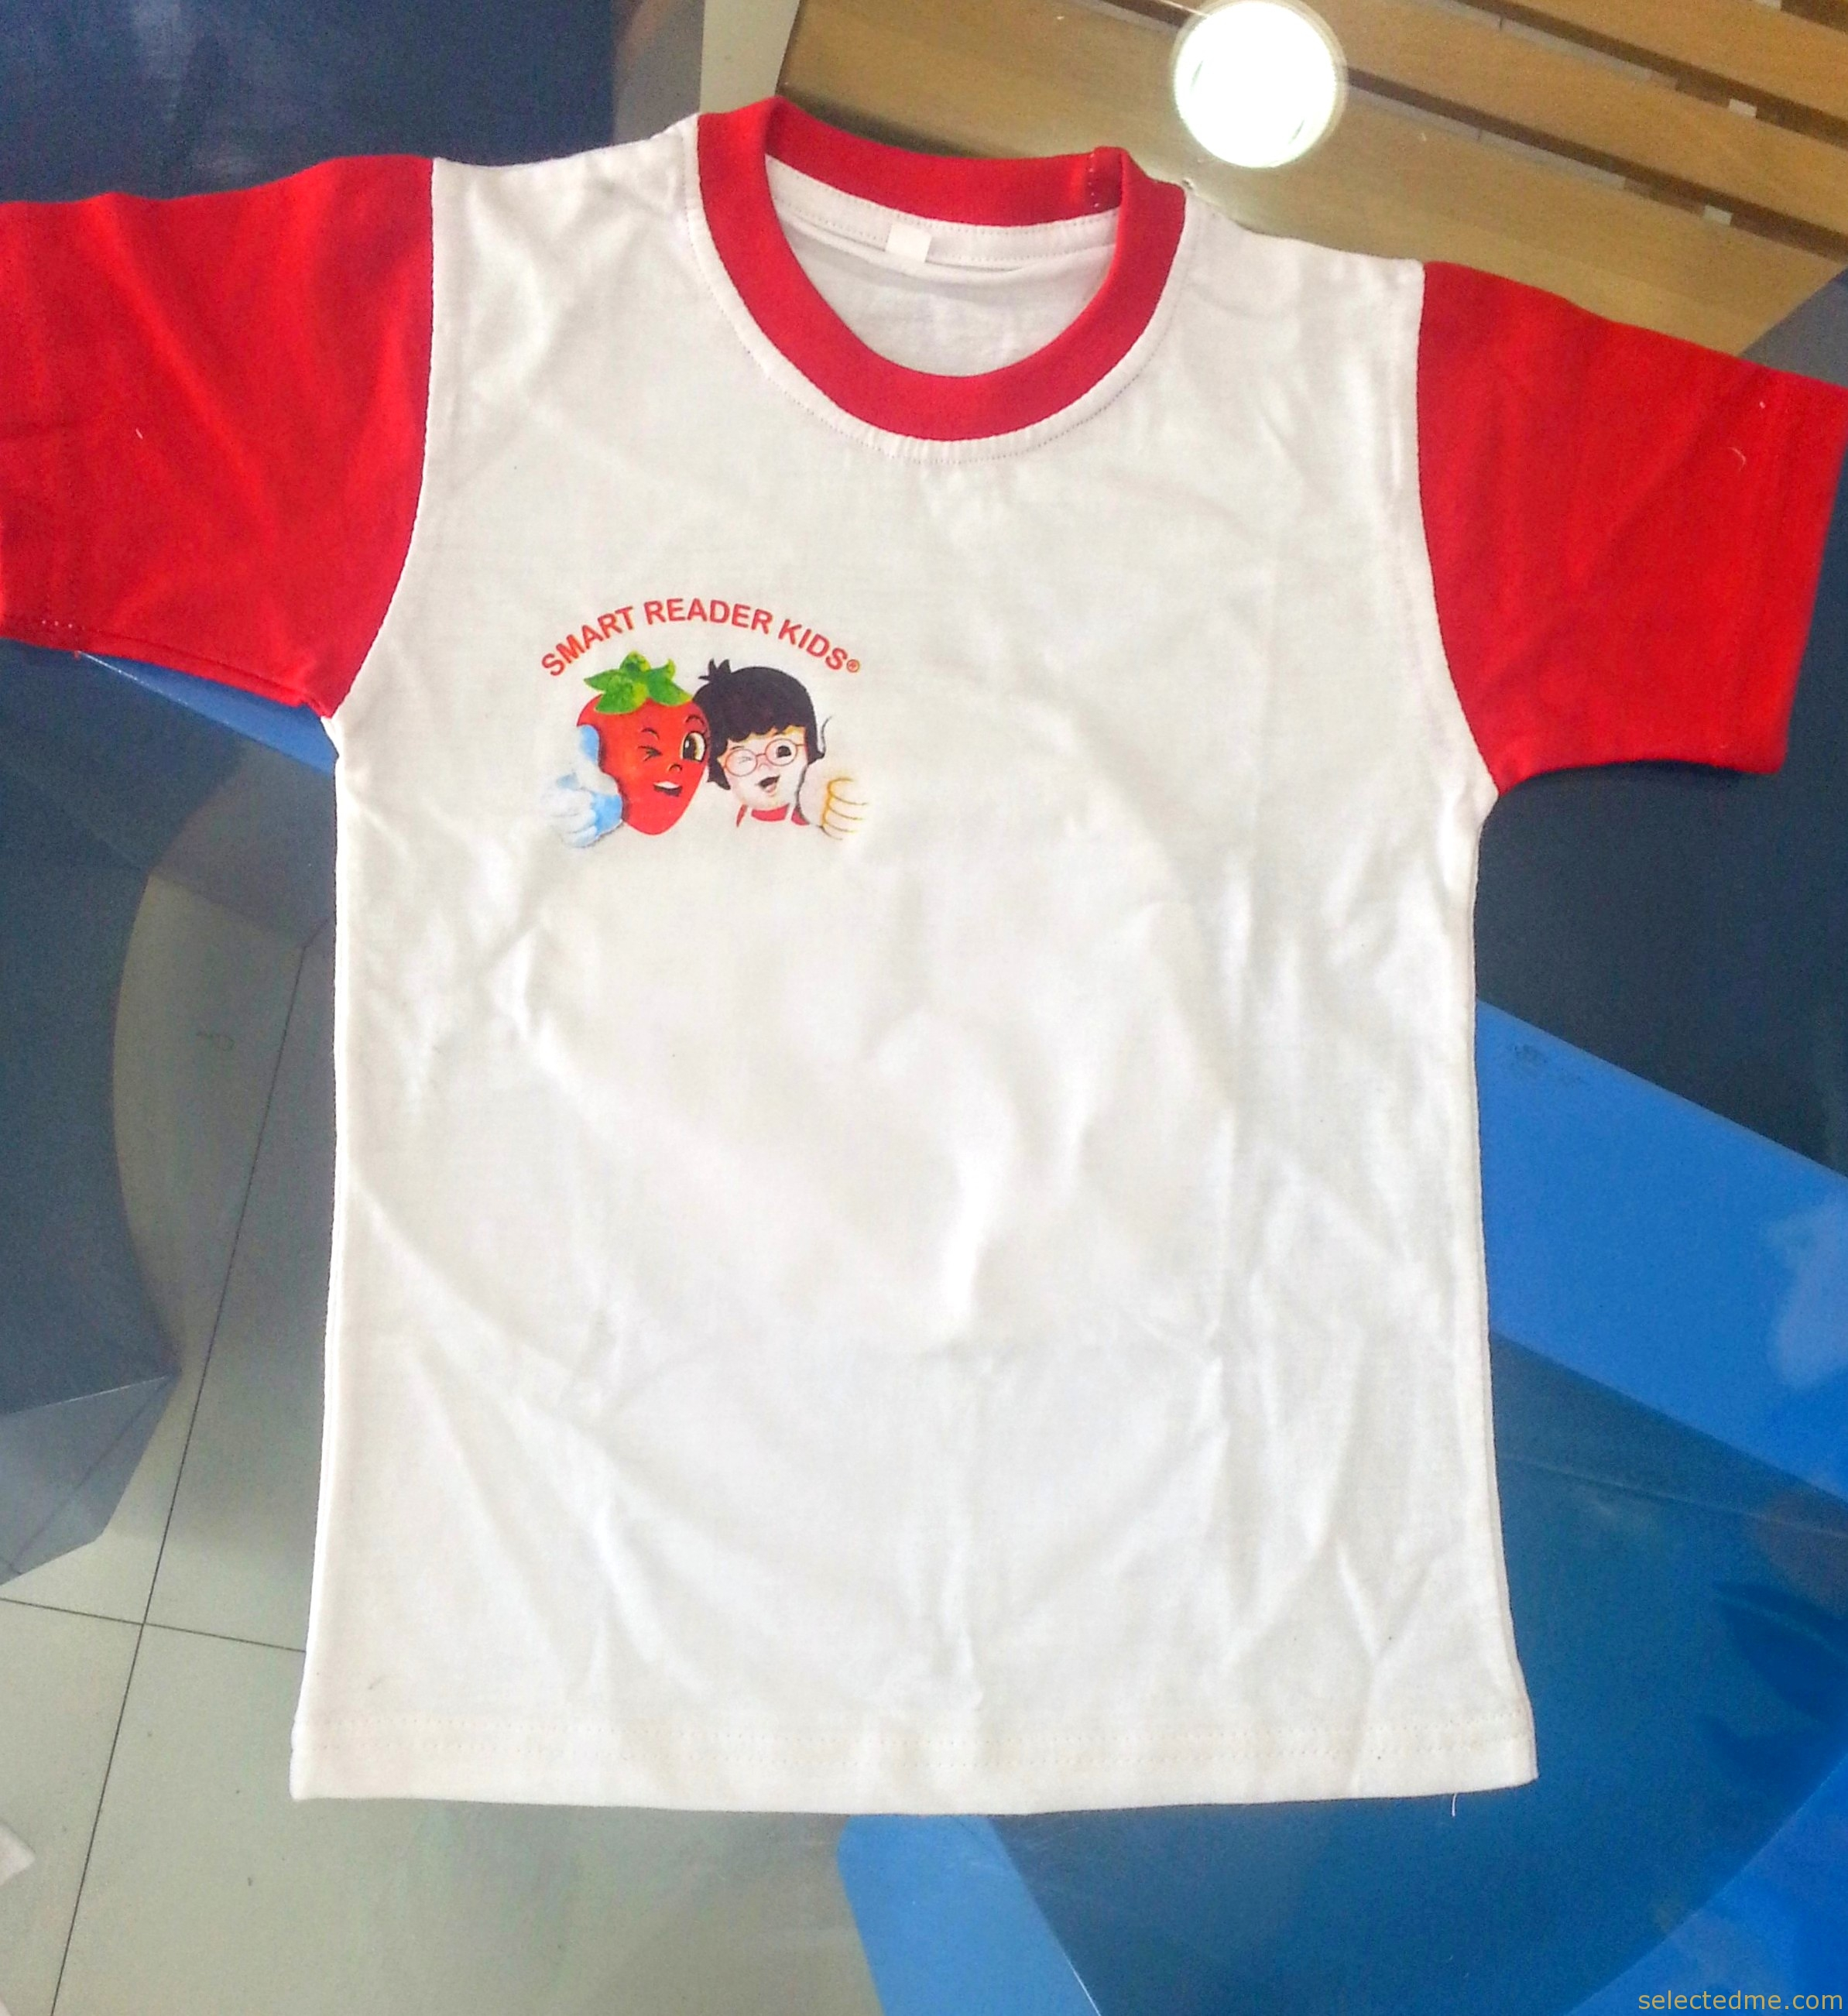 Kindergarten t shirts school children tees for Tee shirt logo printing